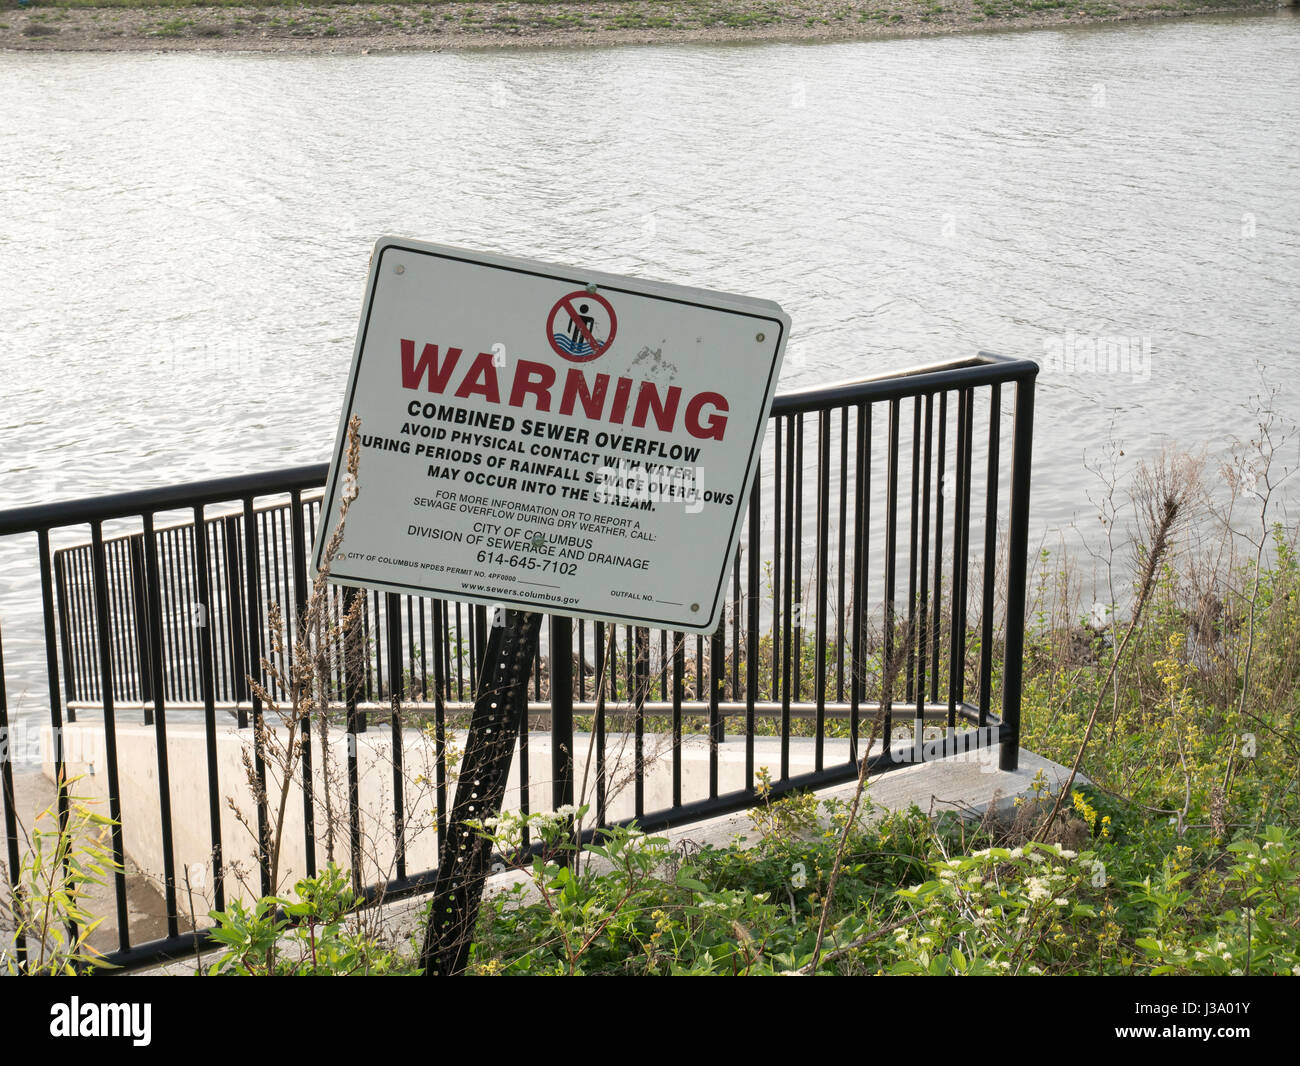 Water pollution warning on storm sewer overflow. Scioto River, Columbus, Ohio. - Stock Image